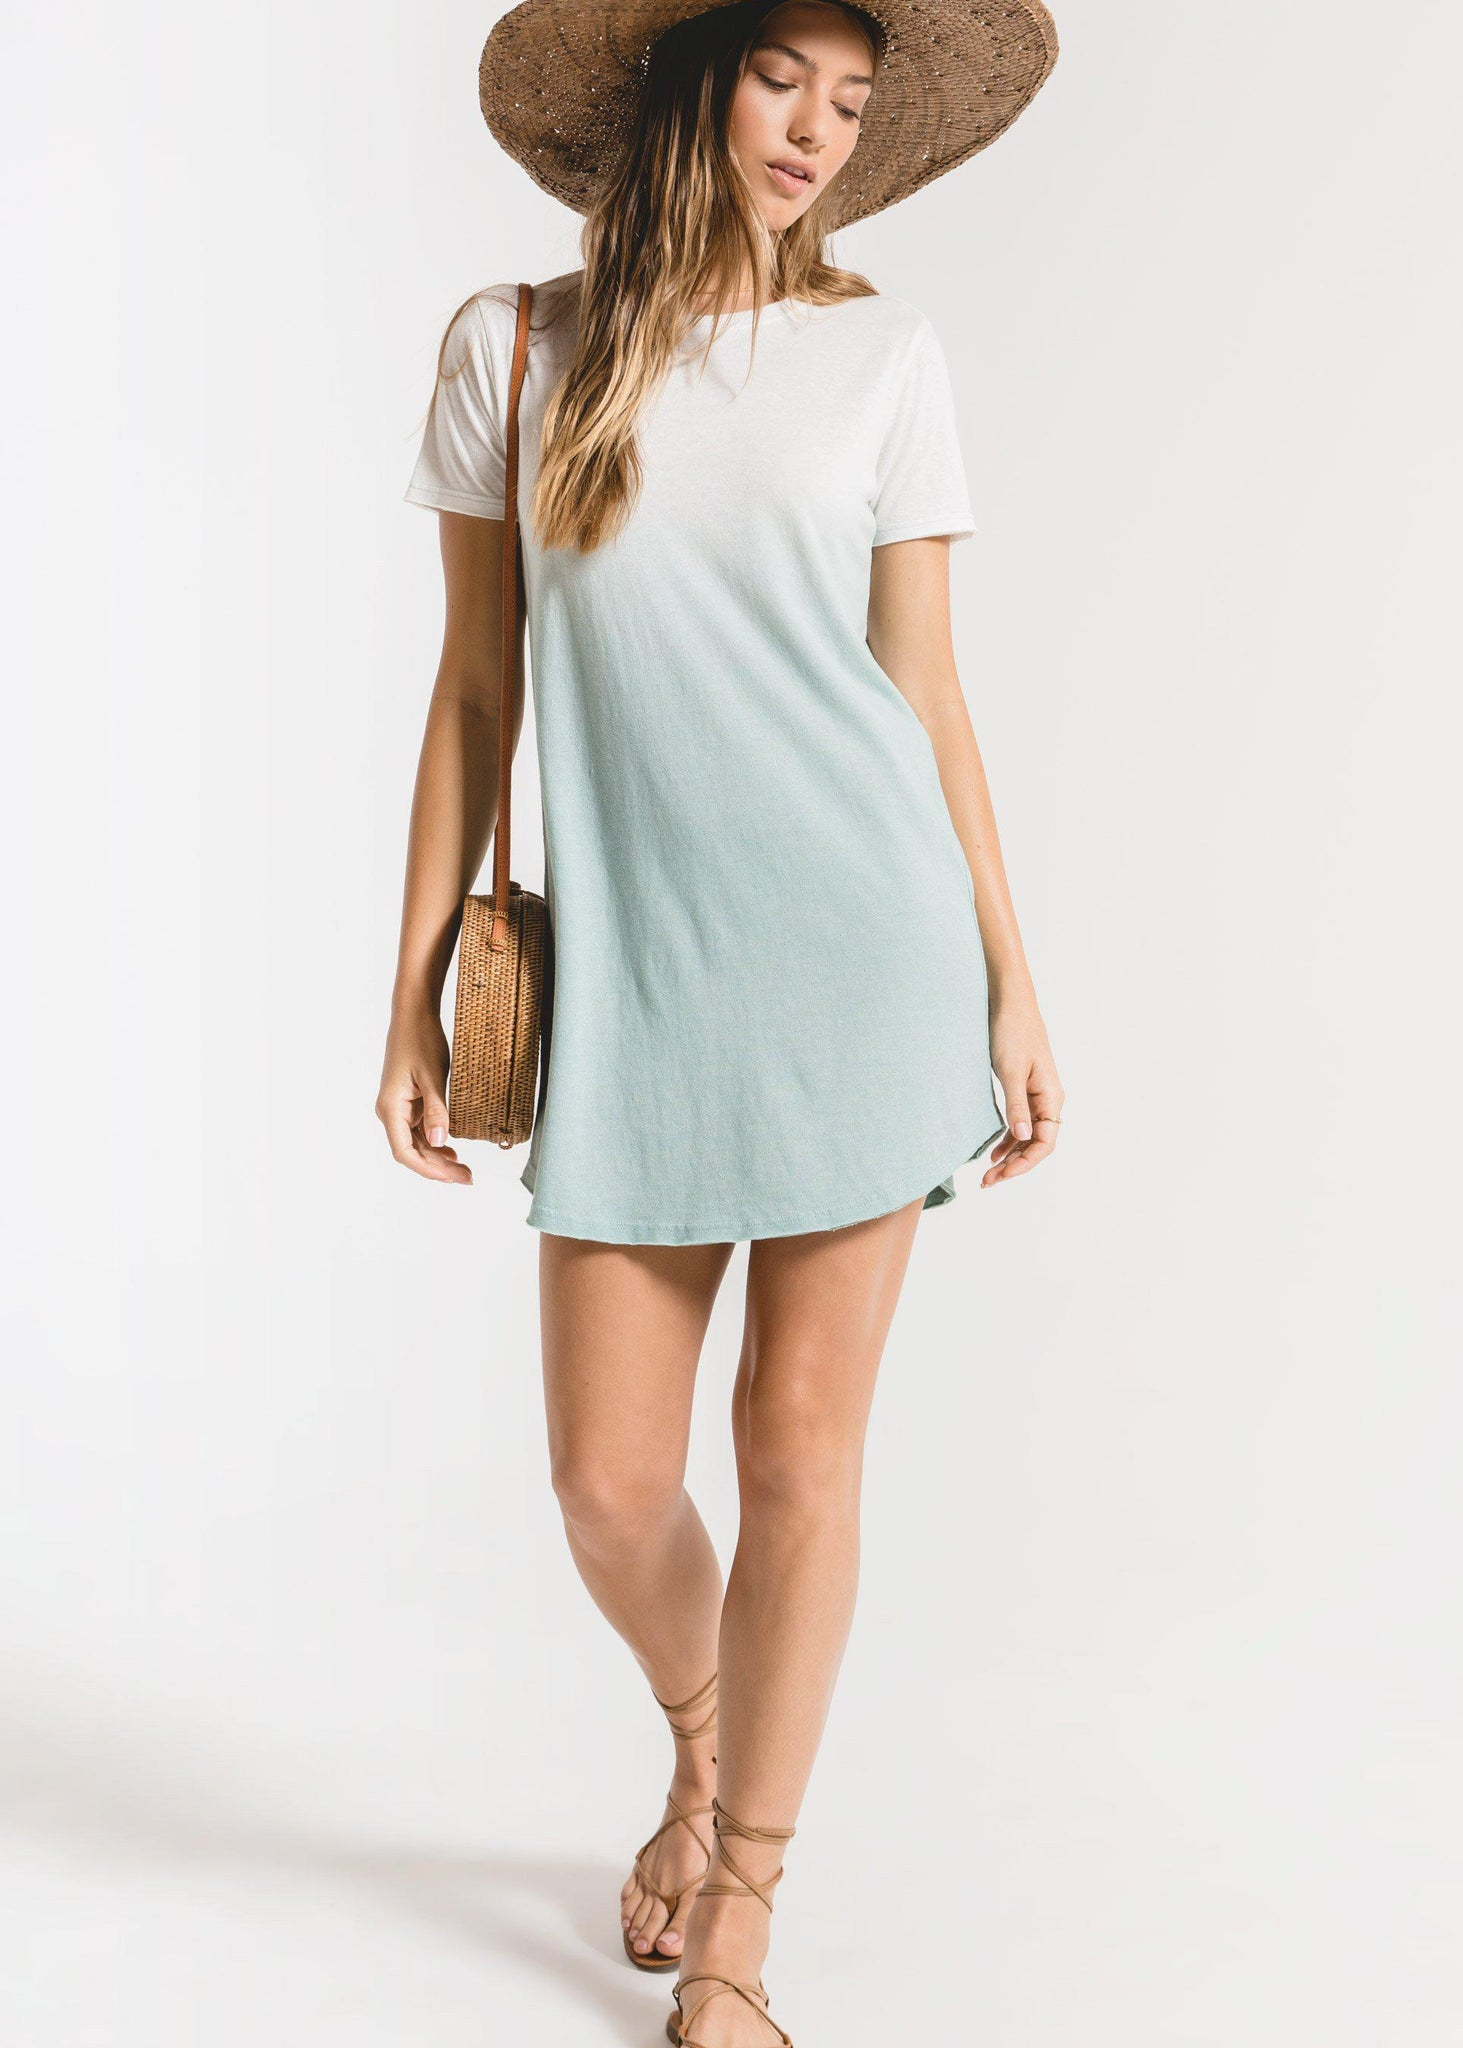 Z Supply Ombre Dip Dye Dress